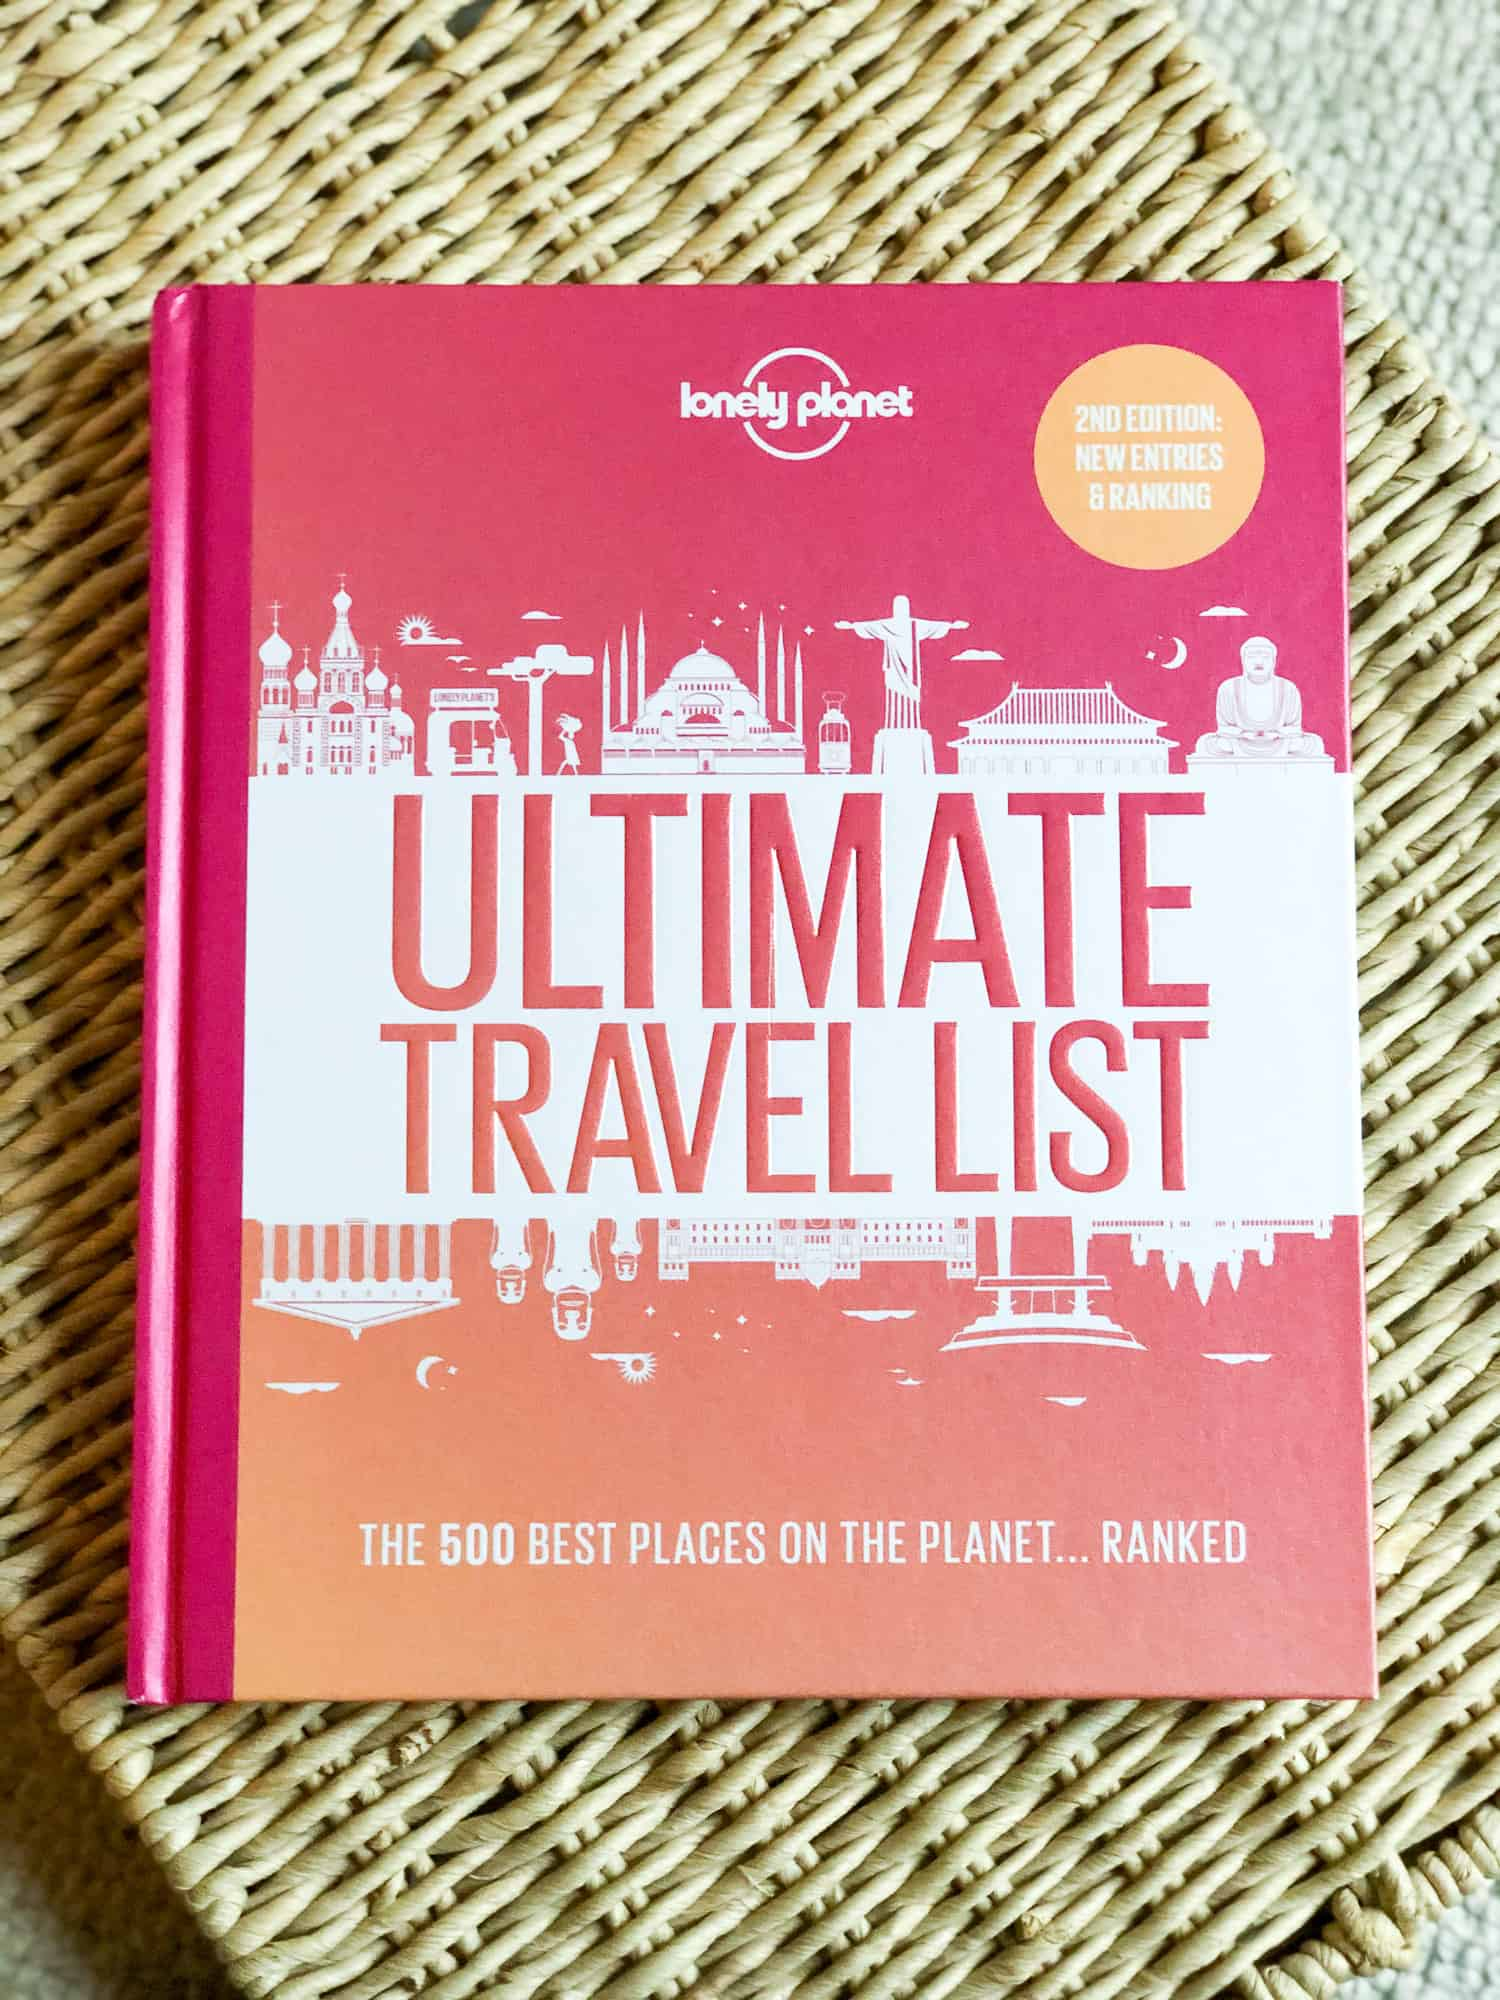 Gift Ideas for Women - Lonely Planet Ultimate Travel List Cover Photo